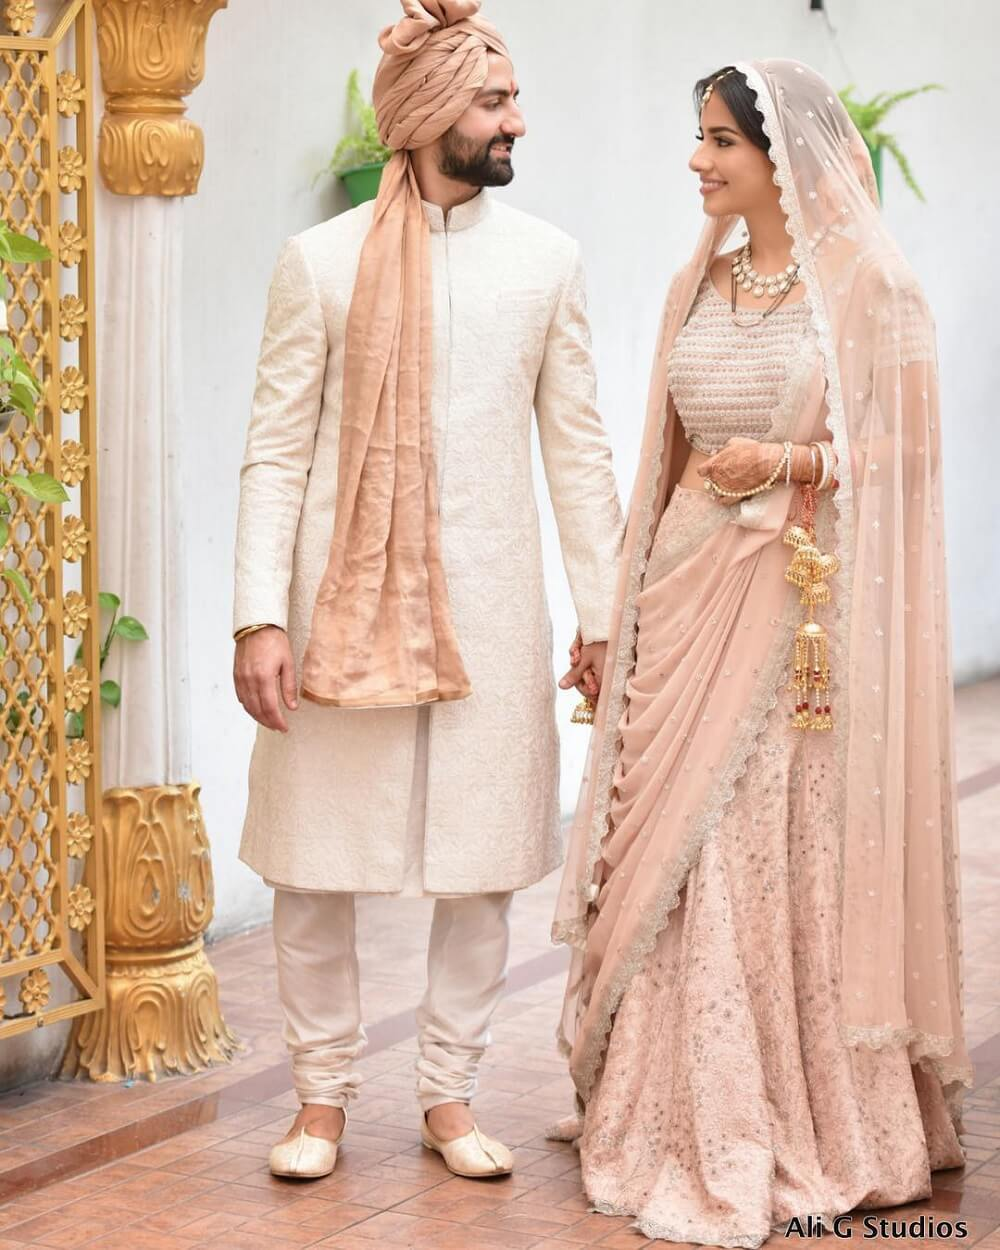 Couple's Wedding Dress Combinations: A Complete Guide To Matching and Mismatching The Bridal Attire With The Groom One